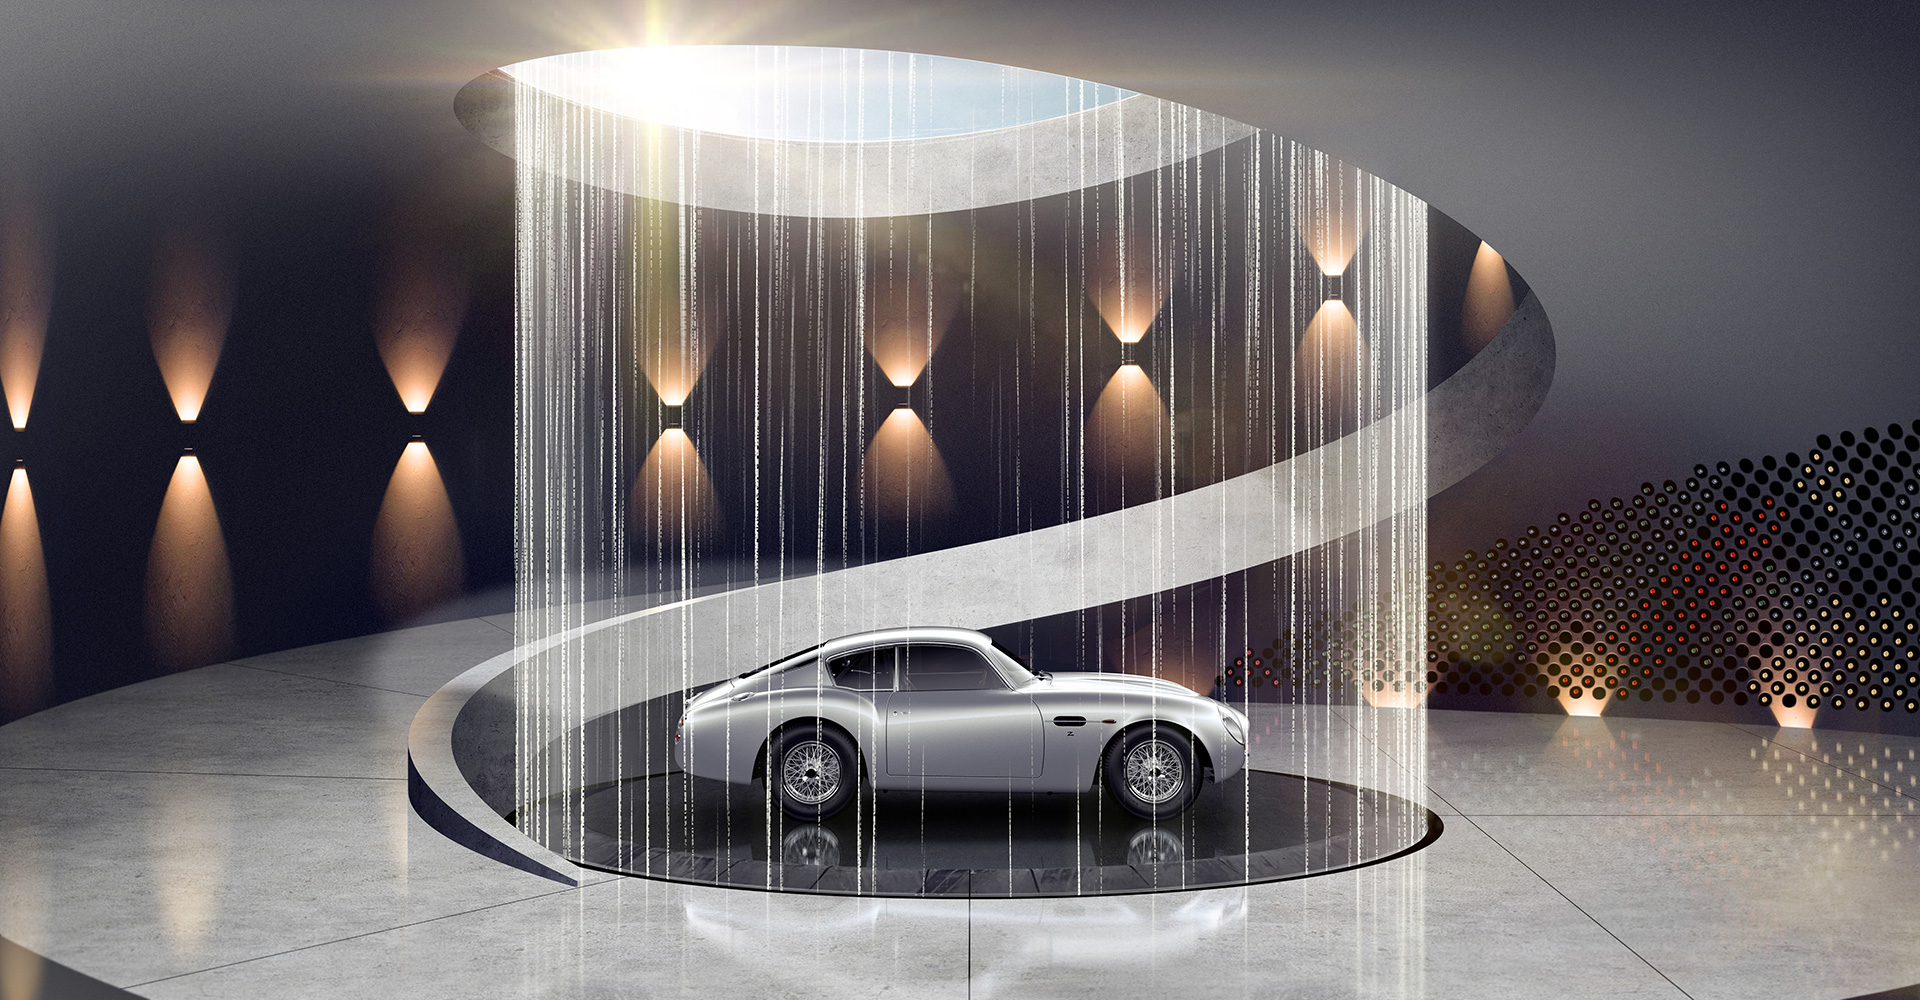 The bespoke galleries will display automotive art too | Aston Martin Automotive Galleries and Lairs| STIRworld